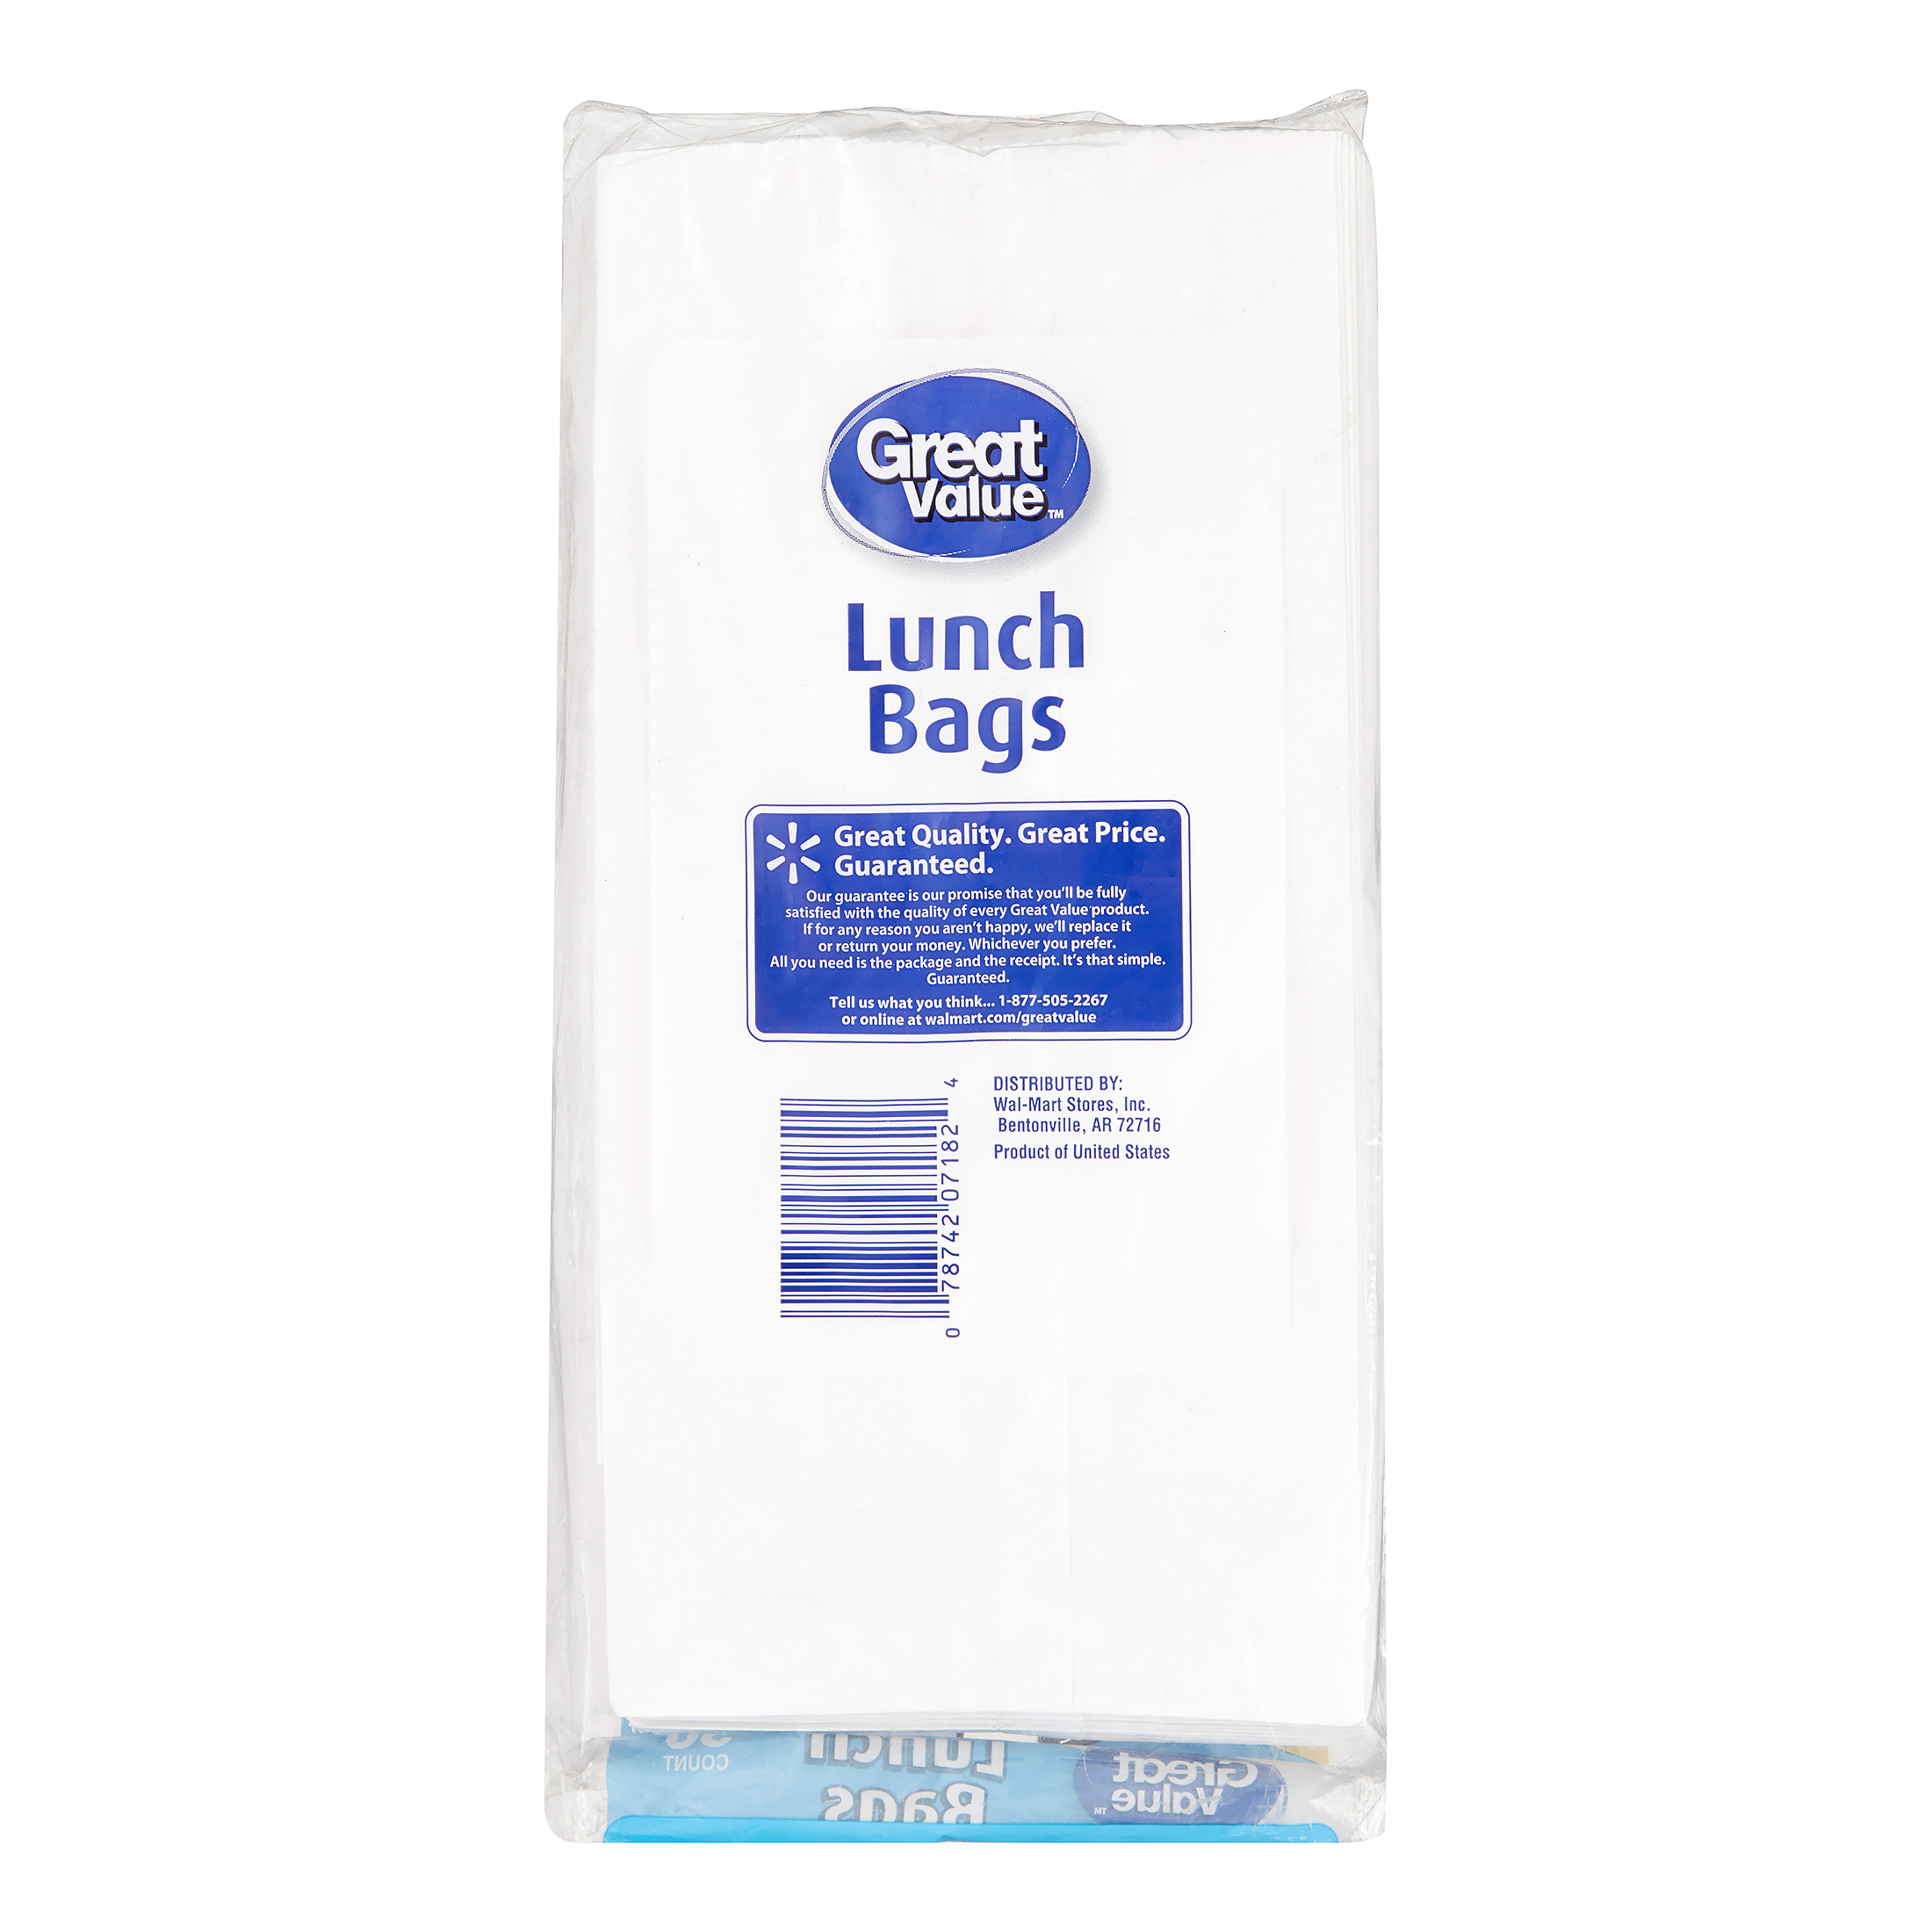 f7dac200b76a Great Value White Lunch Bags, 50 Count - Walmart.com